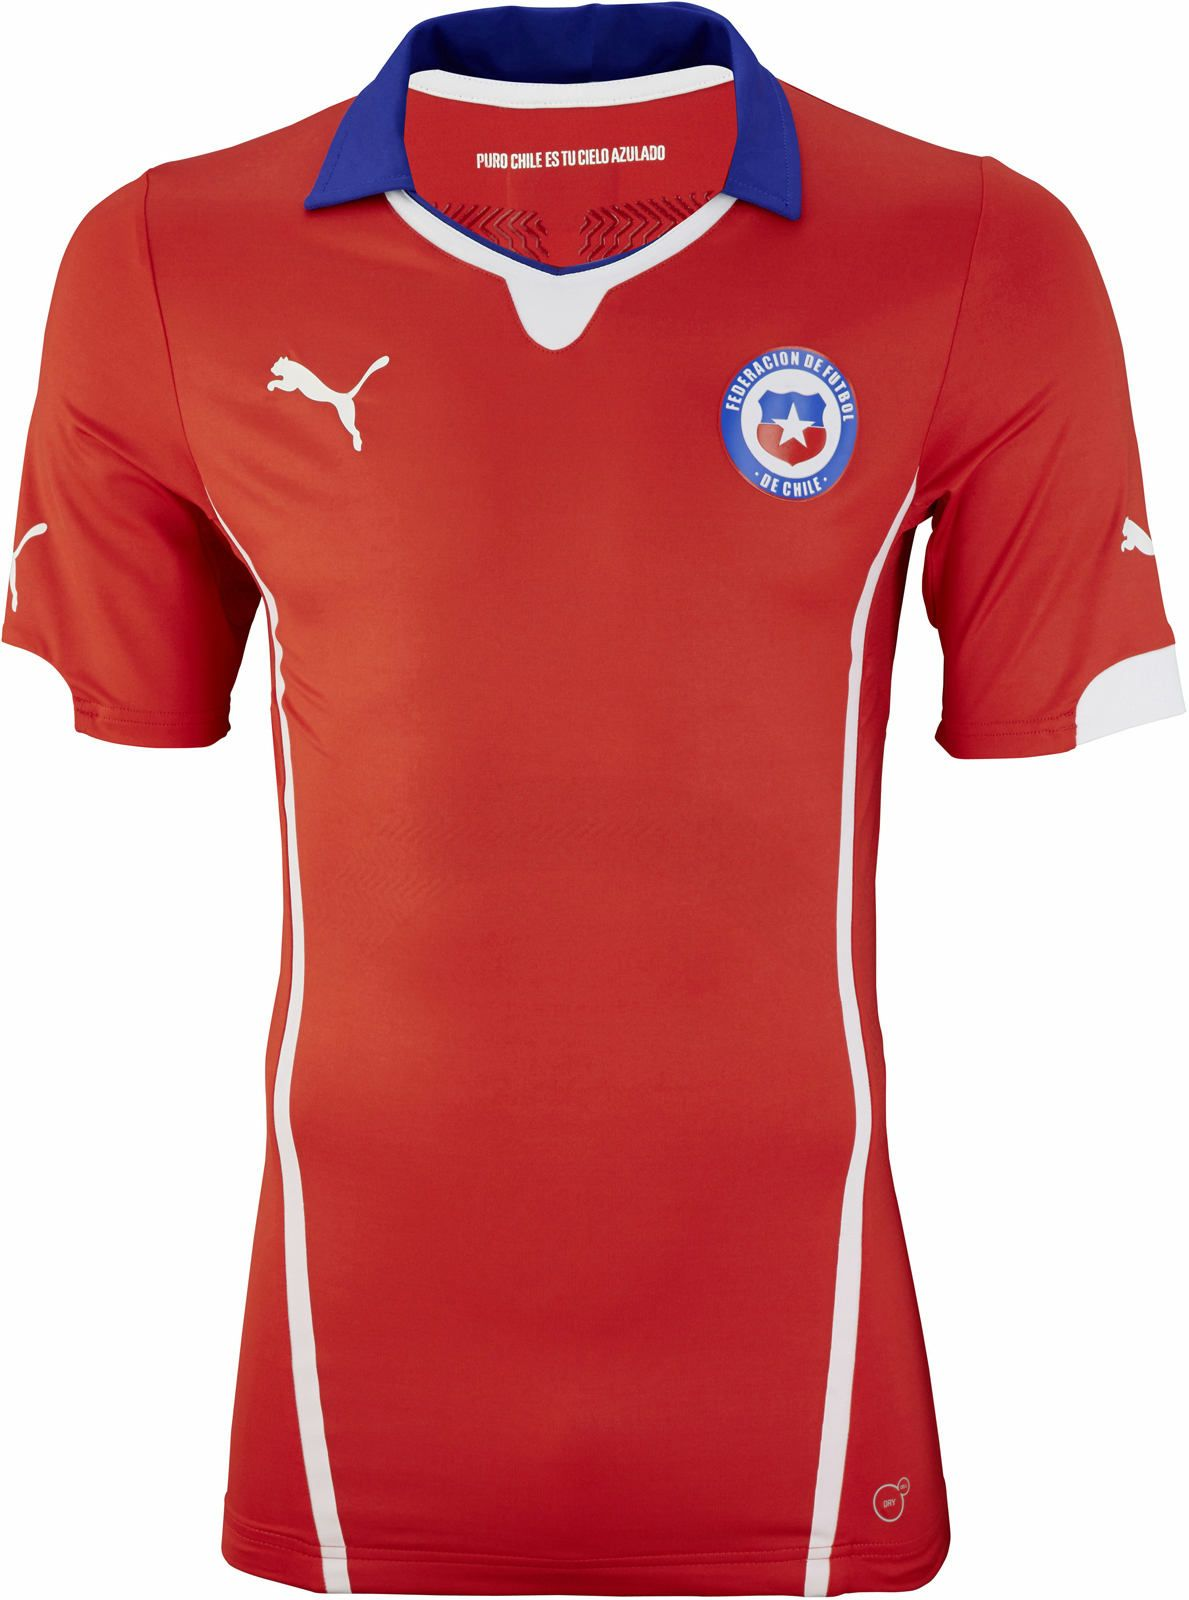 on sale eb33b 27449 Chile 2014 World Cup Home and Away Kits Released - Footy ...